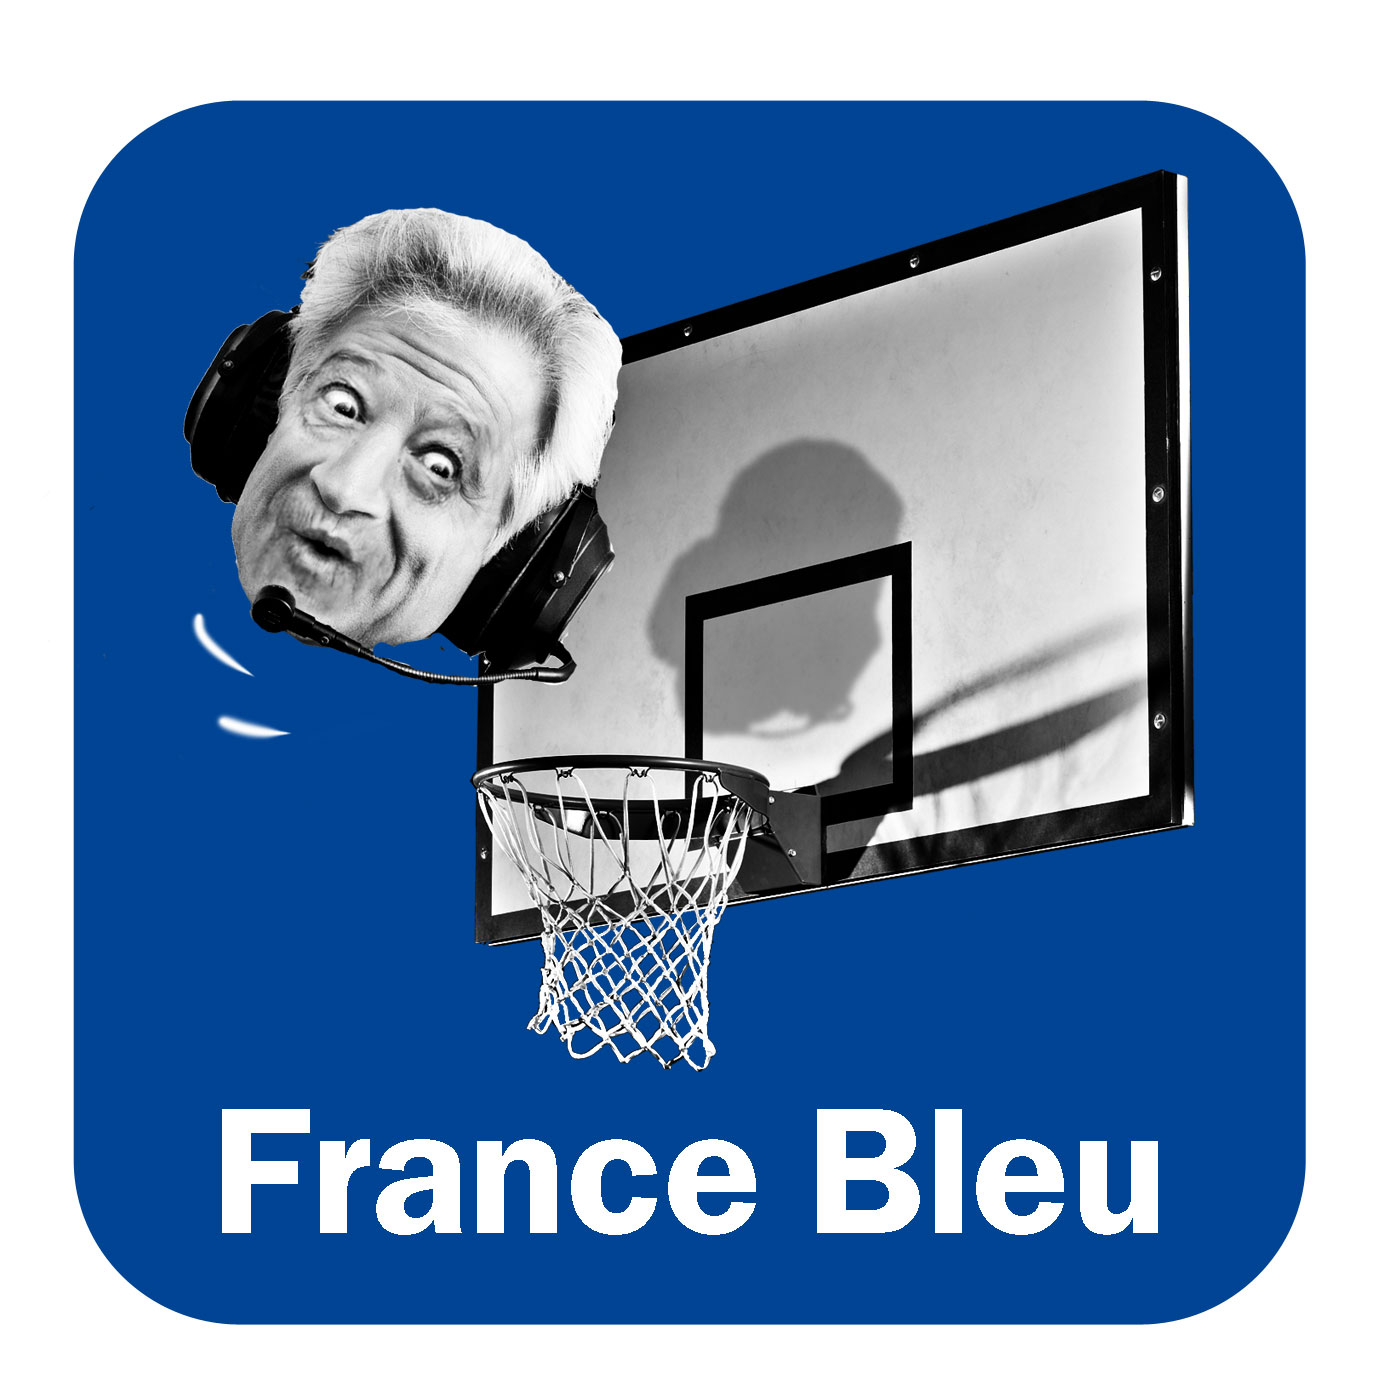 Sport plus France bleu Roussillon